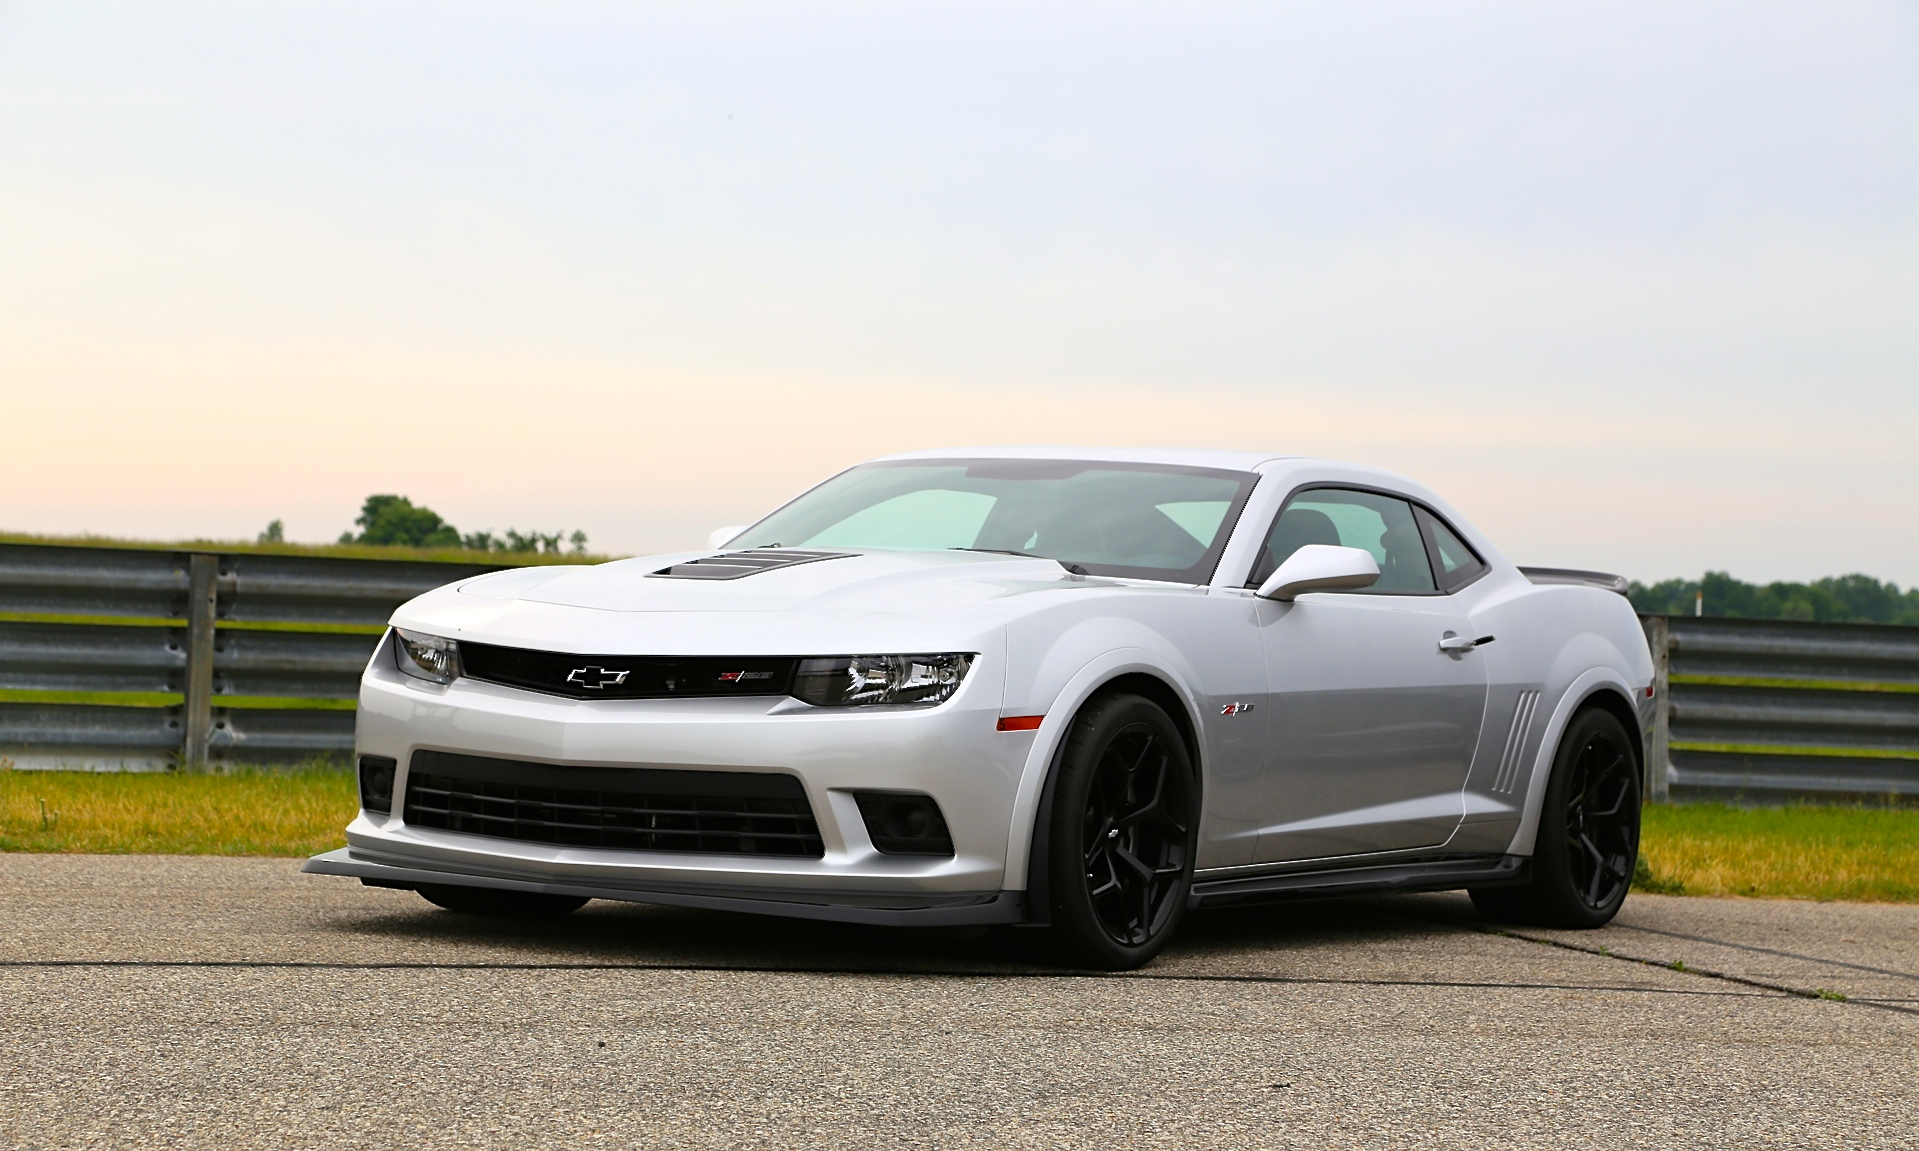 2015 Chevrolet Camaro Z 28 First Drive Review